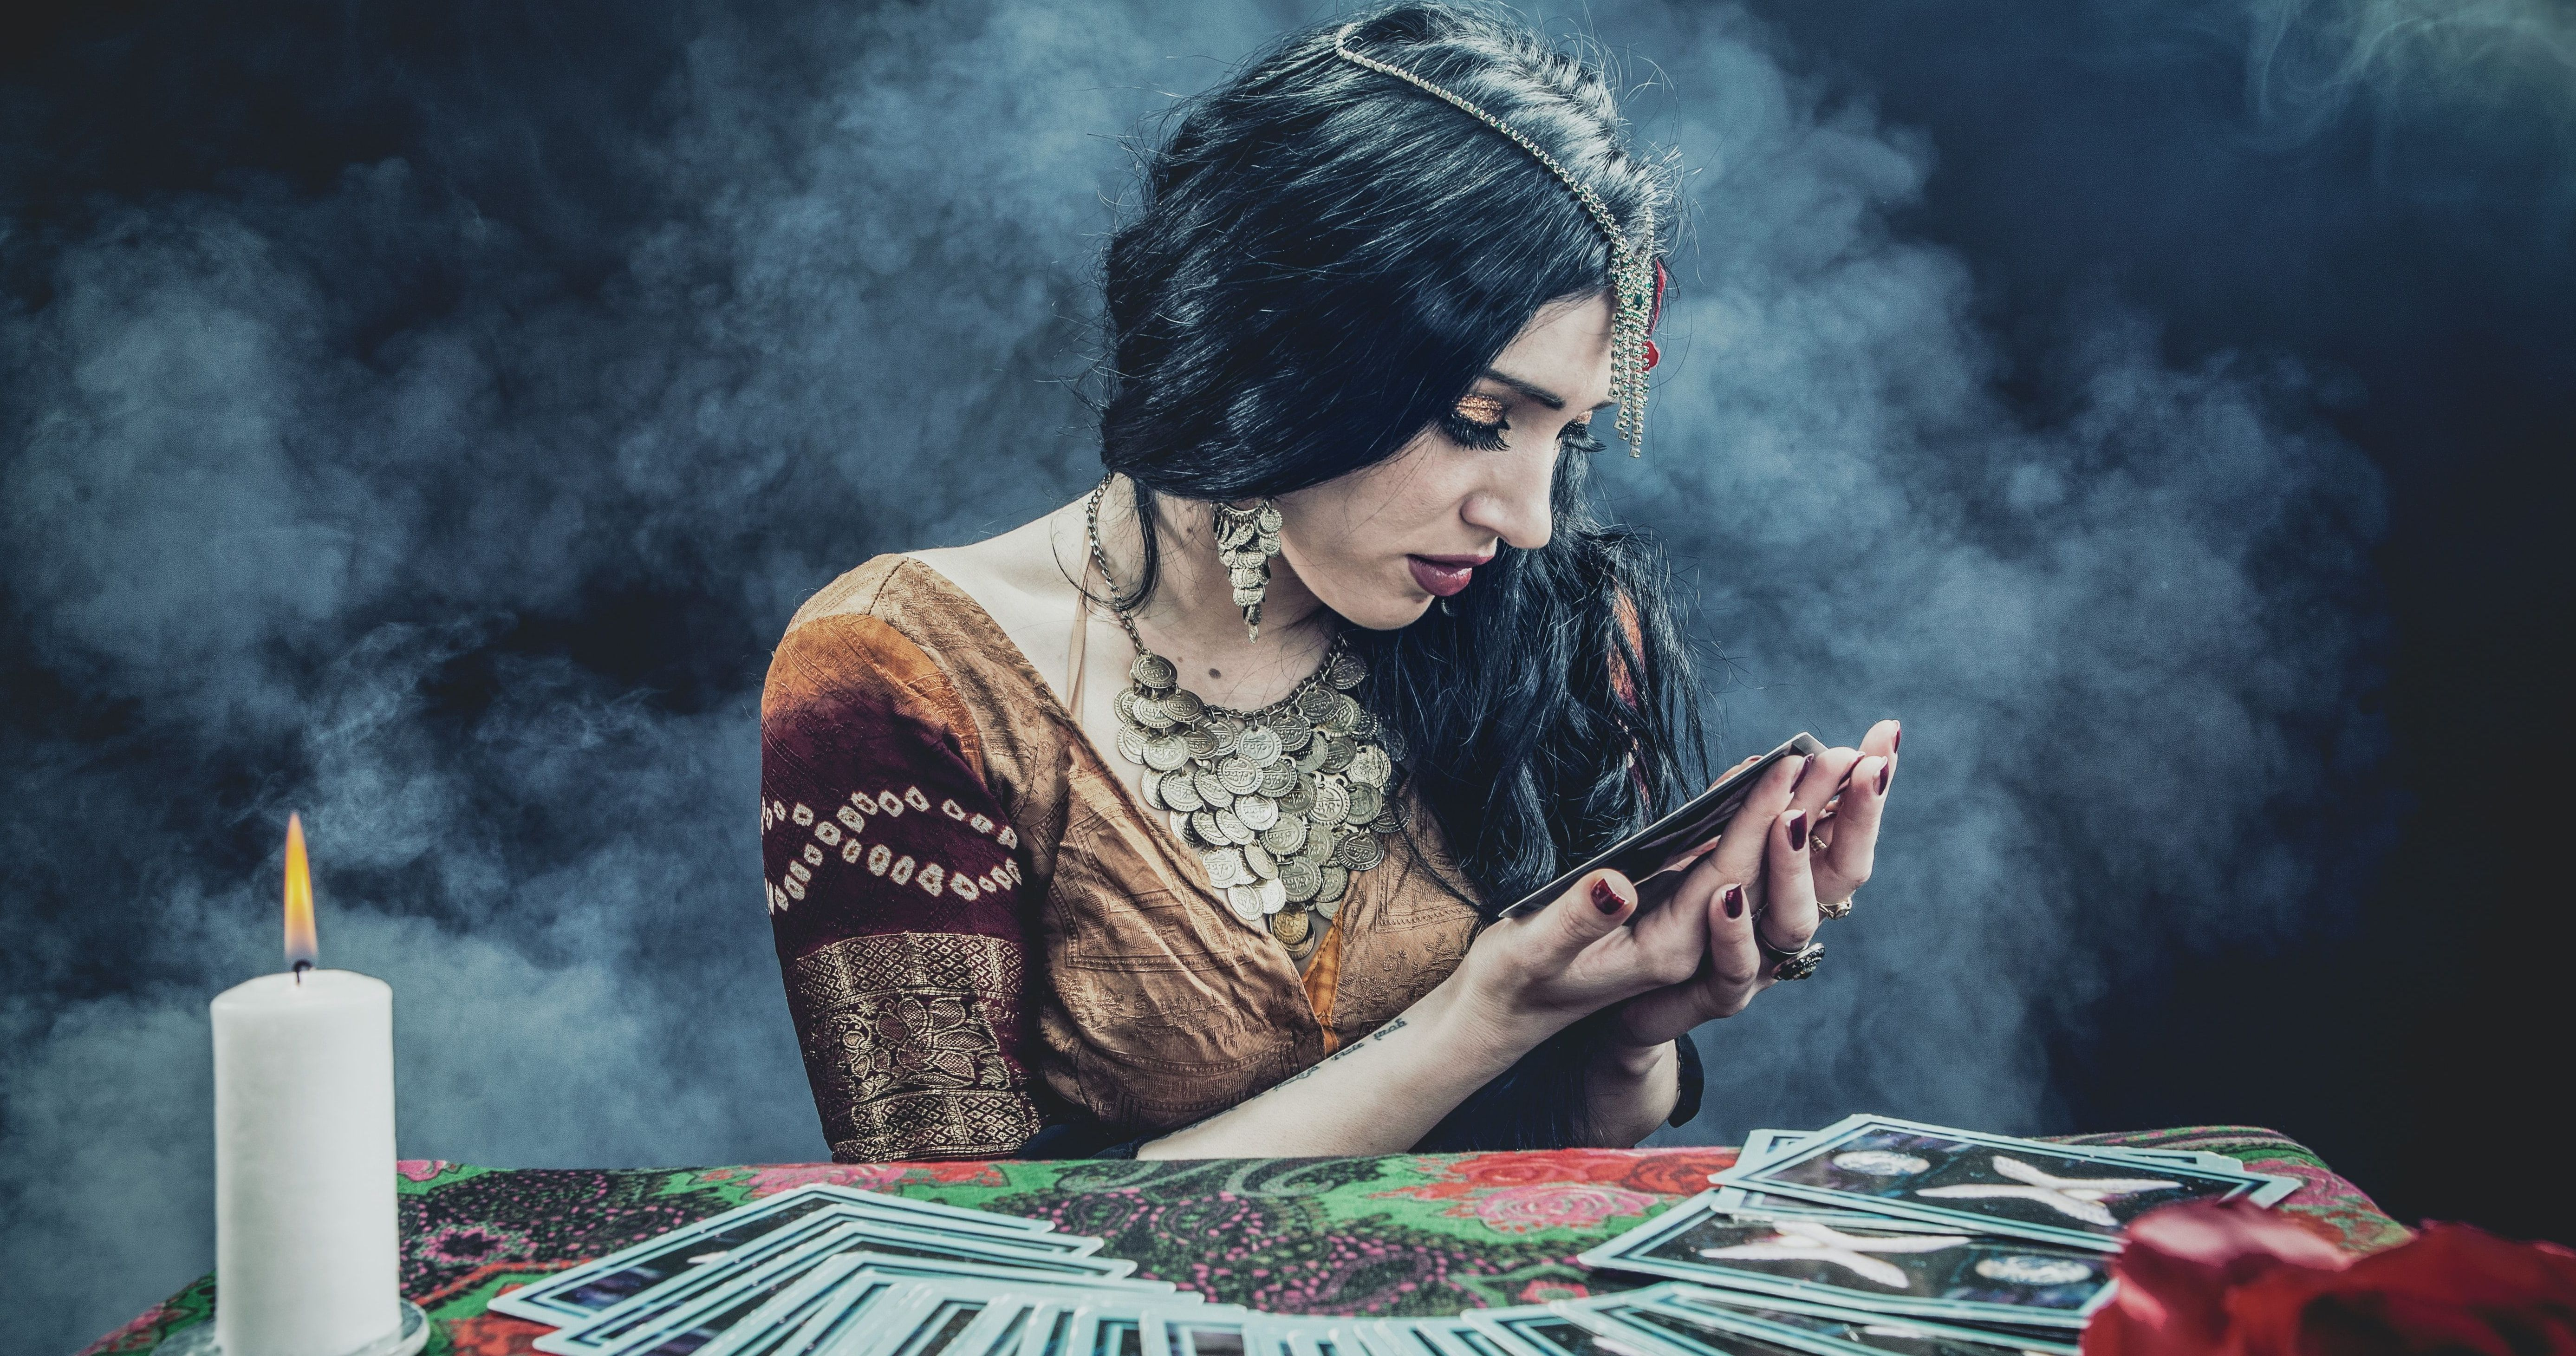 6 Surprising Things You Can Learn From A Fortune Teller